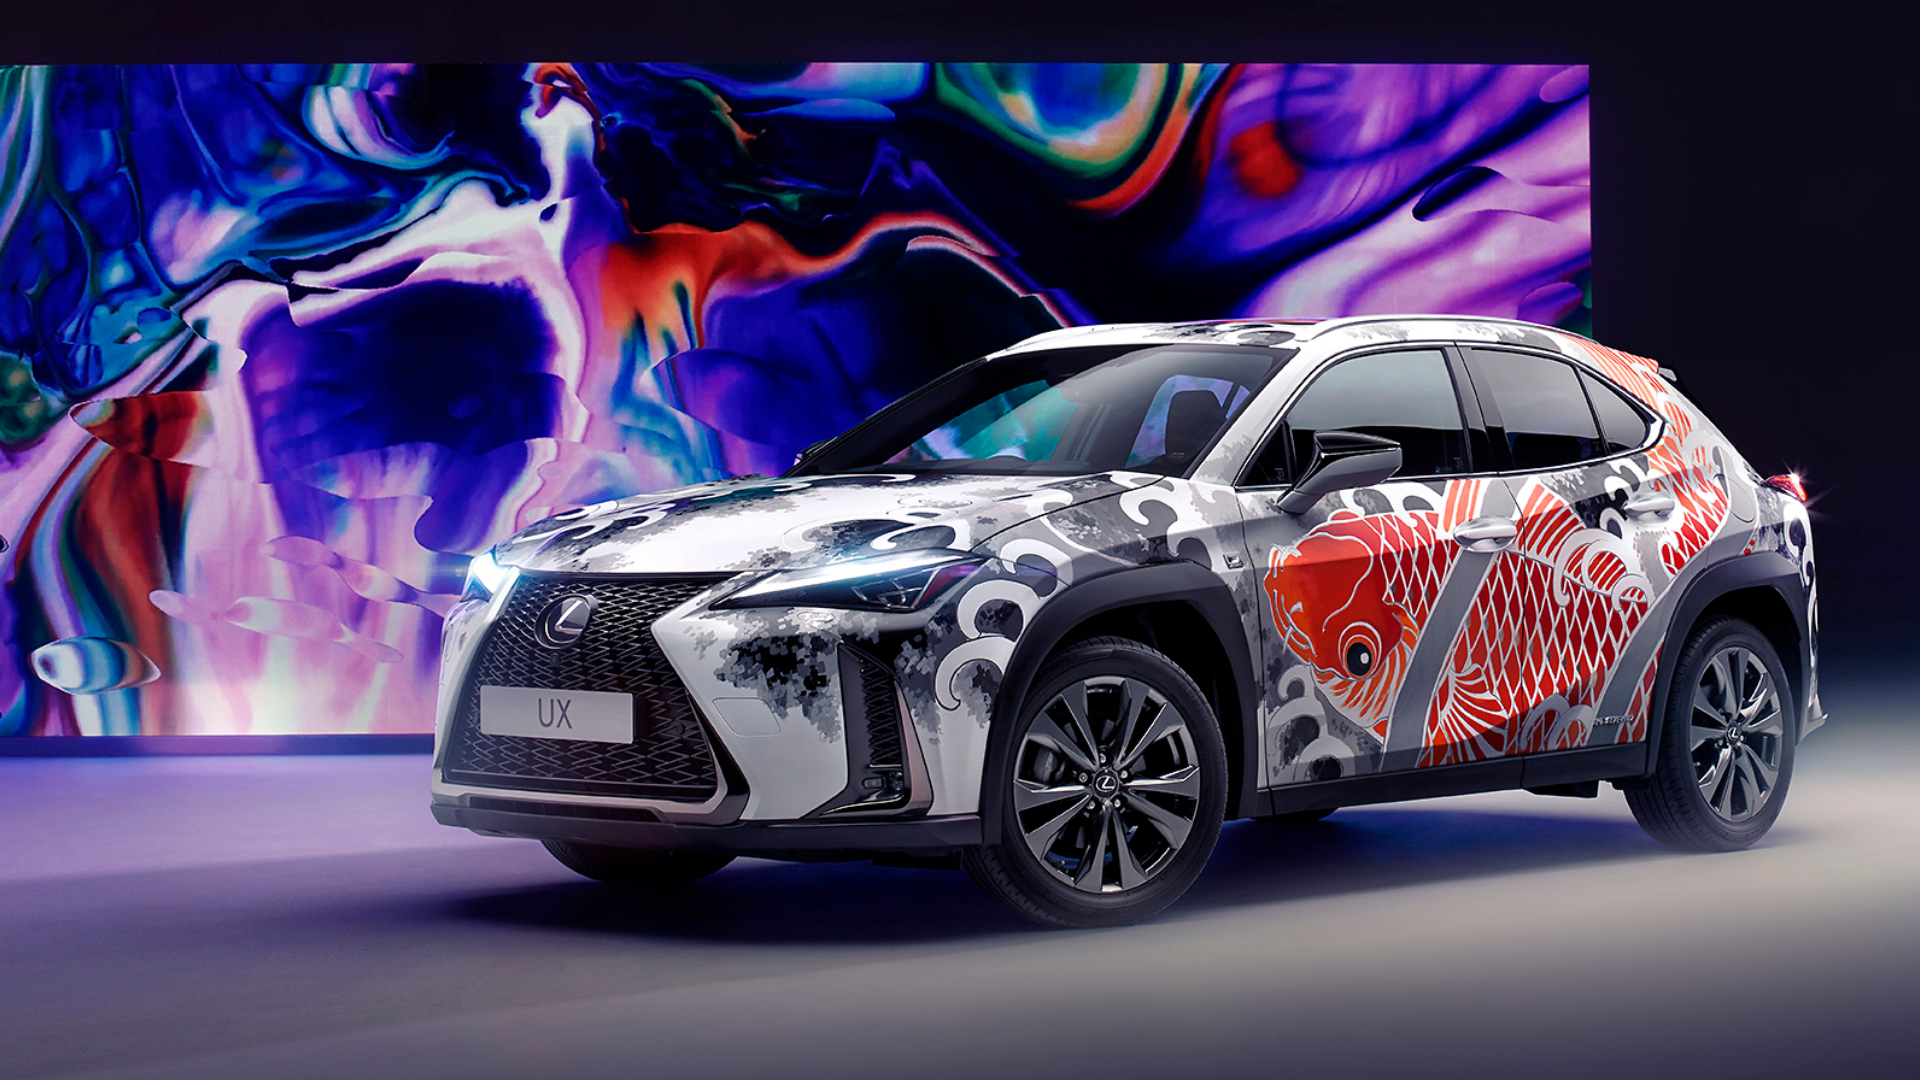 Lexus UX is the world's first tattooed car